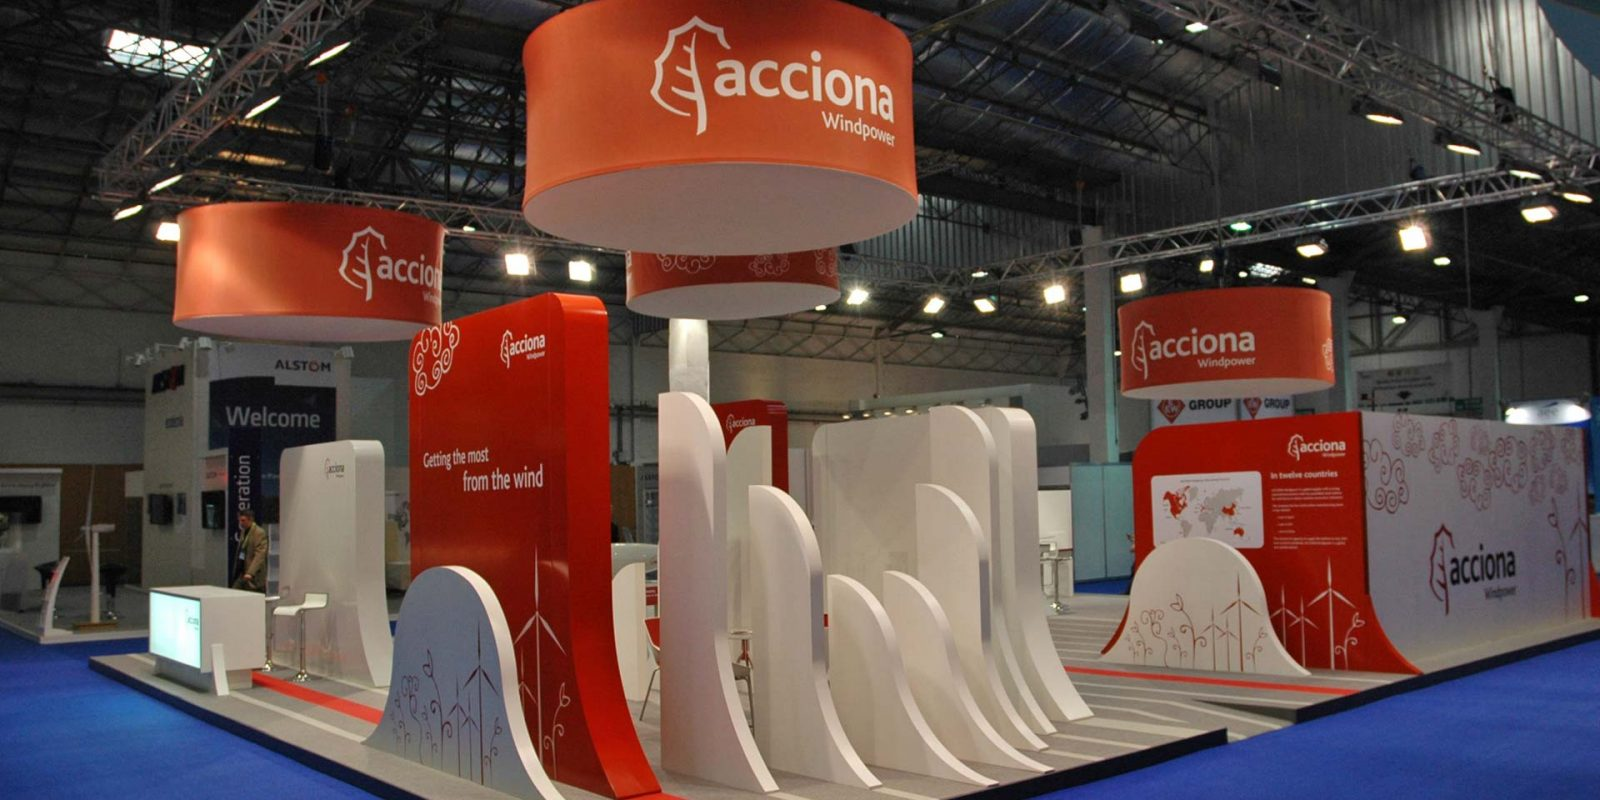 STANDS ACCIONA ENERGÍA AND ACCIONA WINDPOWER